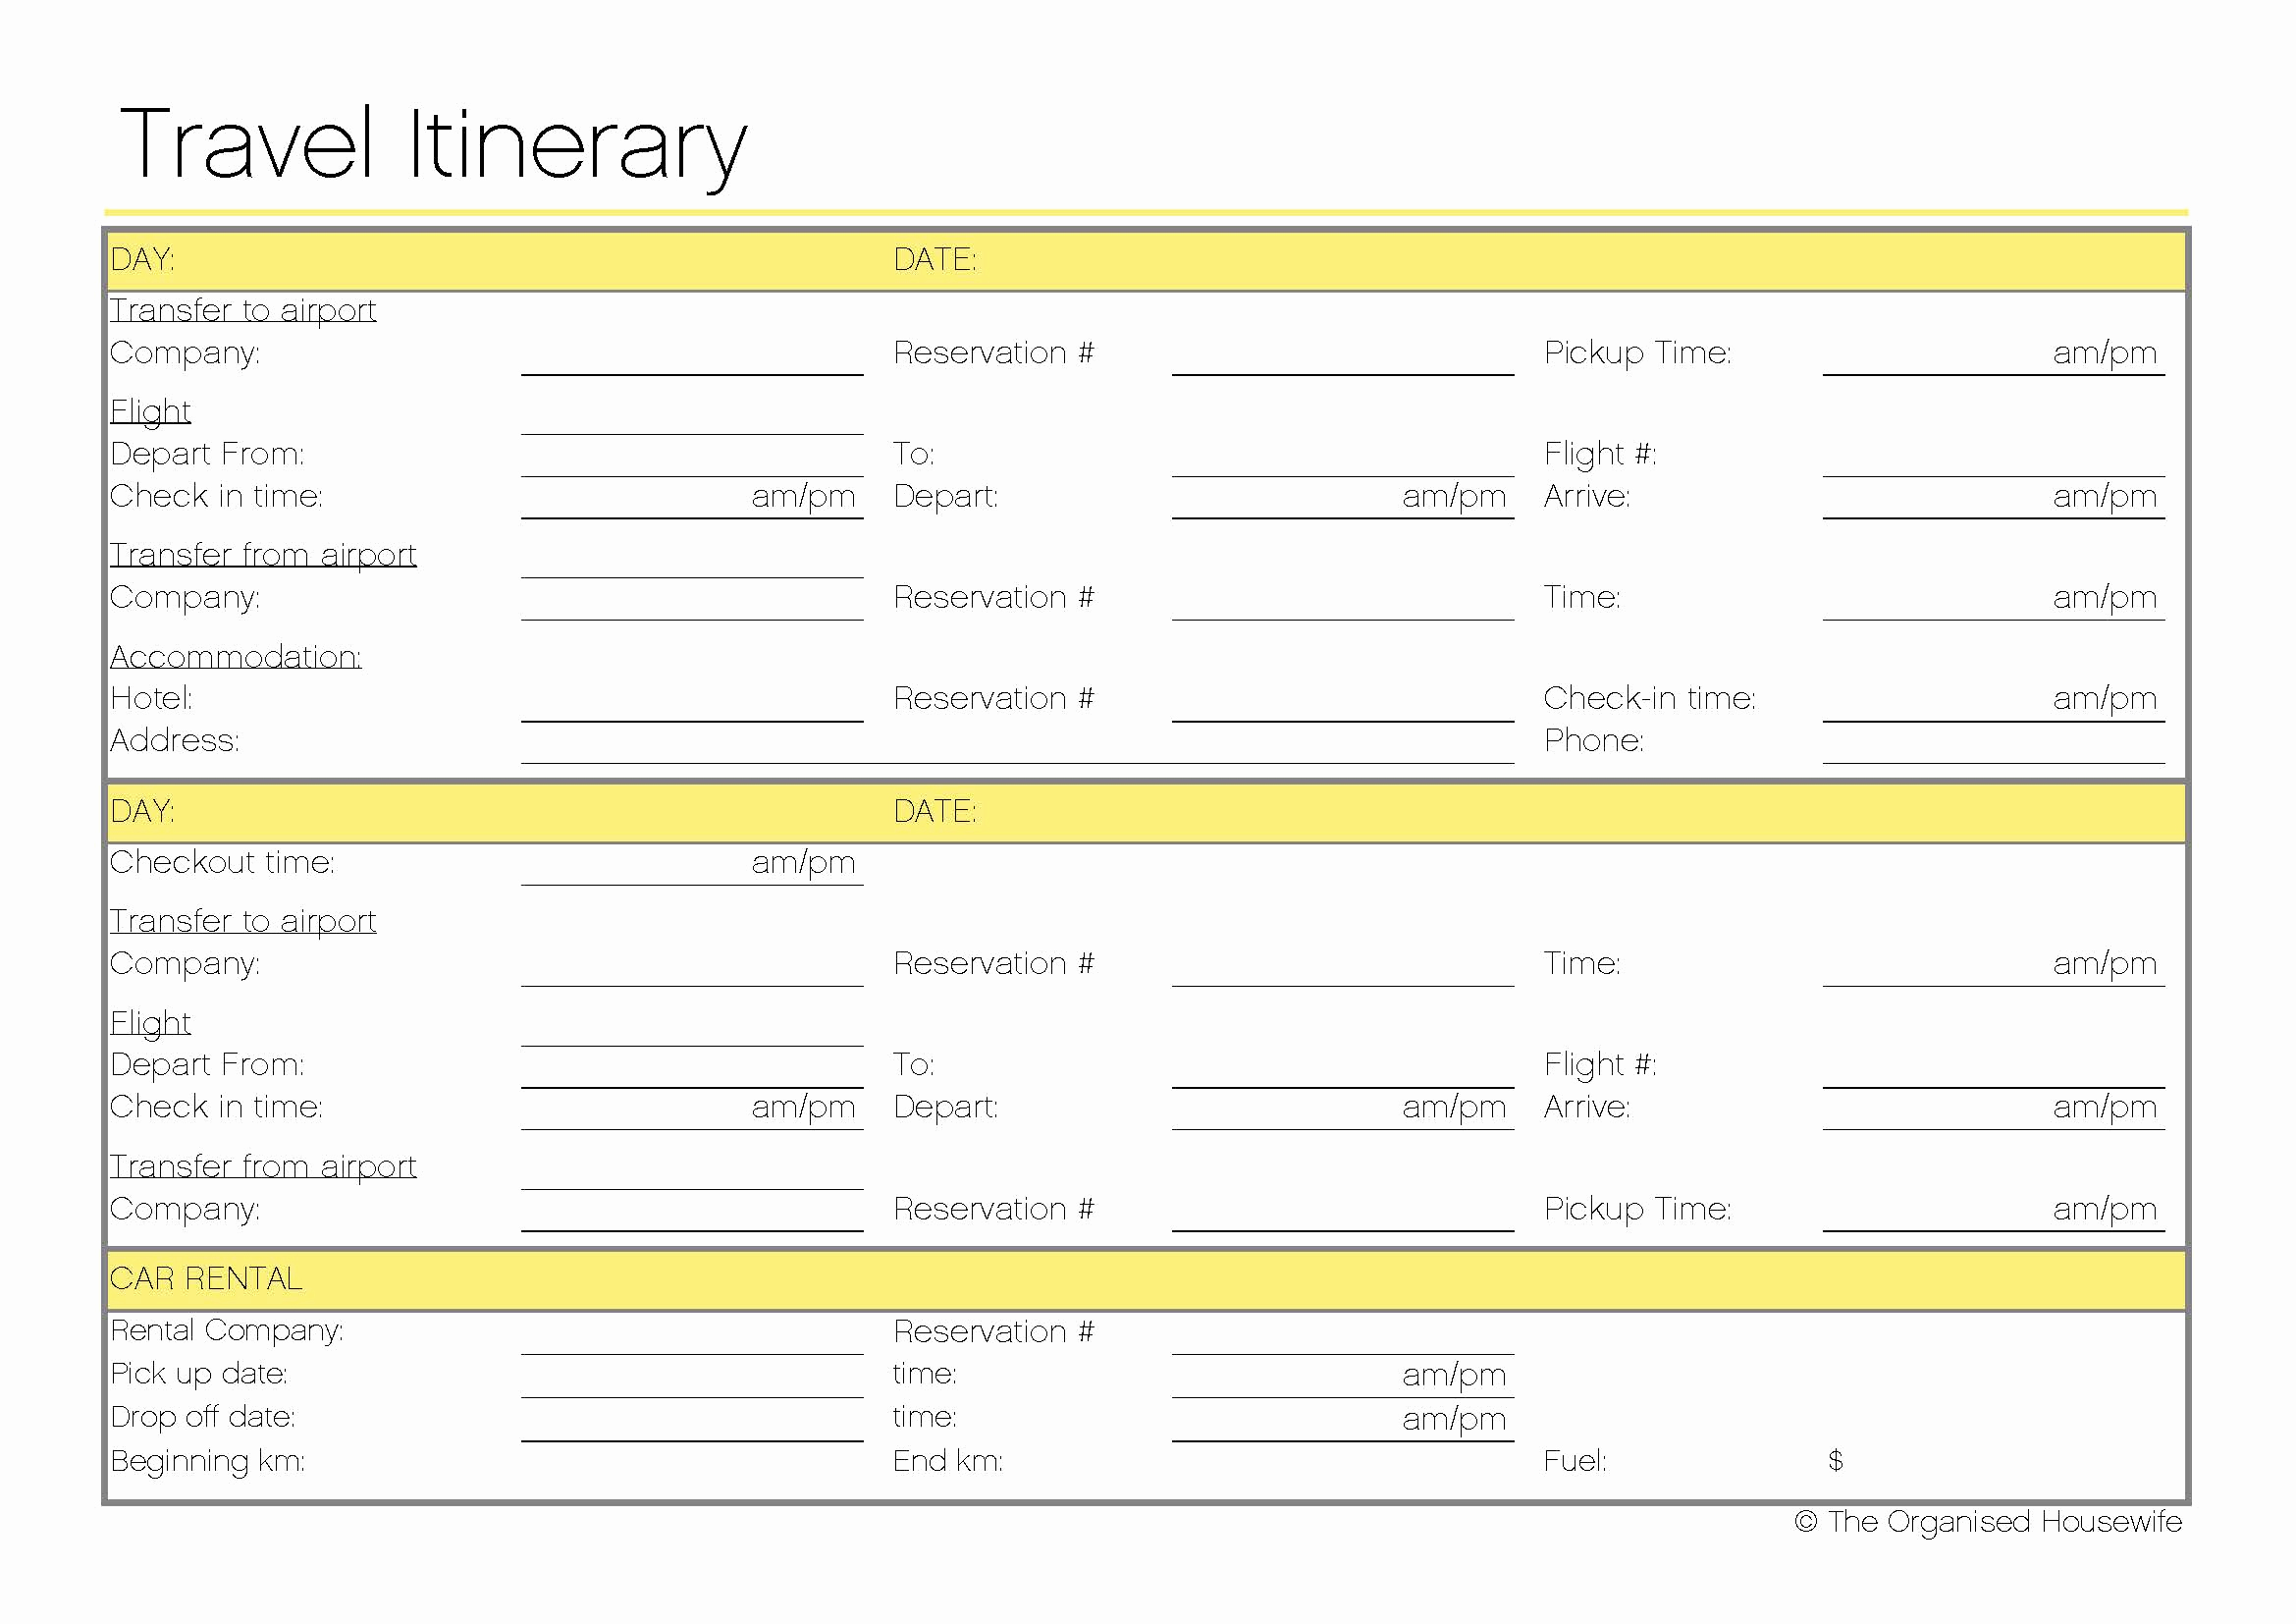 Itinerary Template Google Docs Fresh Free Printable Travel Itinerary the organised Housewife